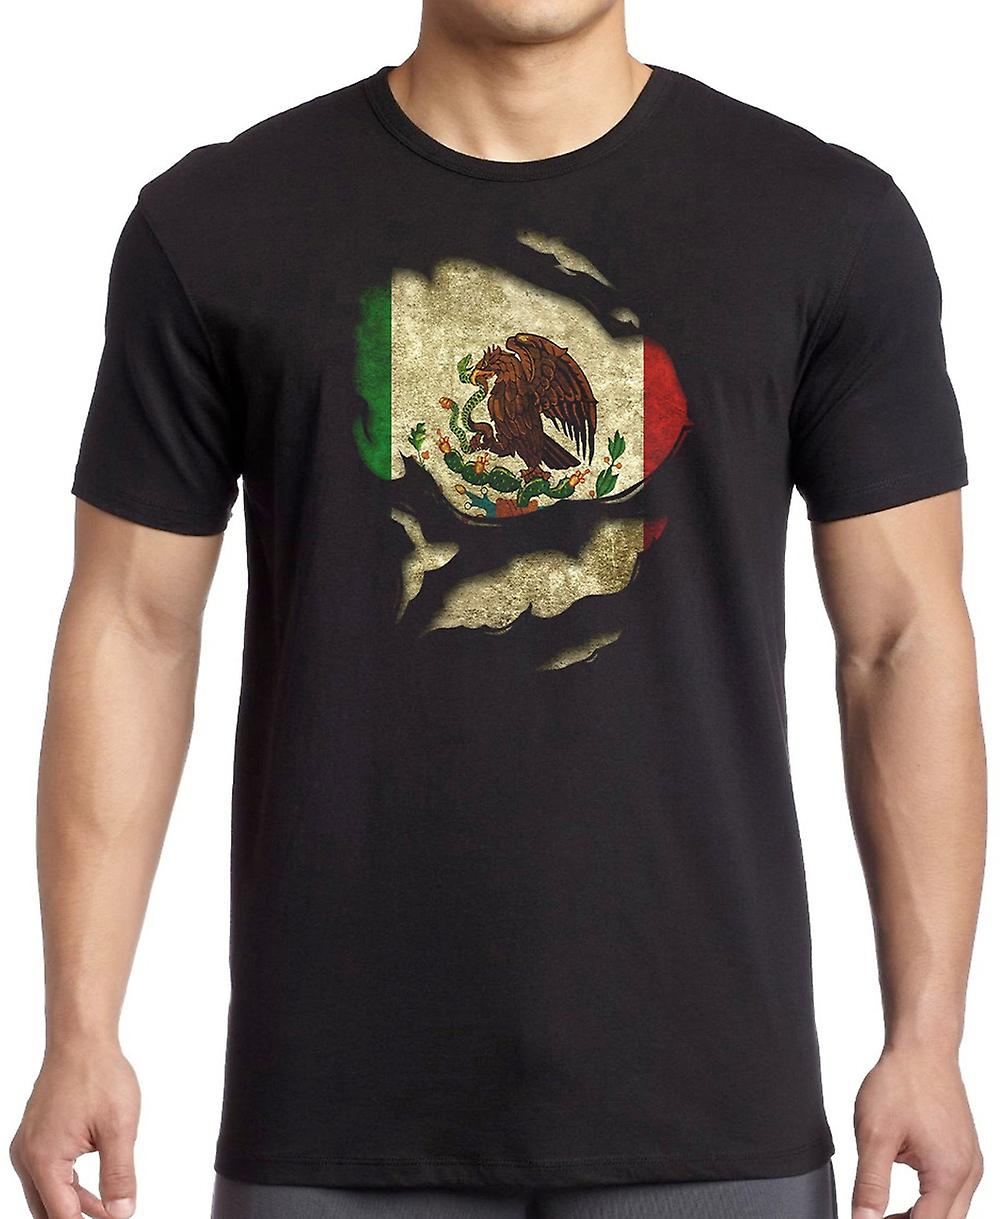 Mexico Mexican Ripped Effect Under Shirt T Shirt